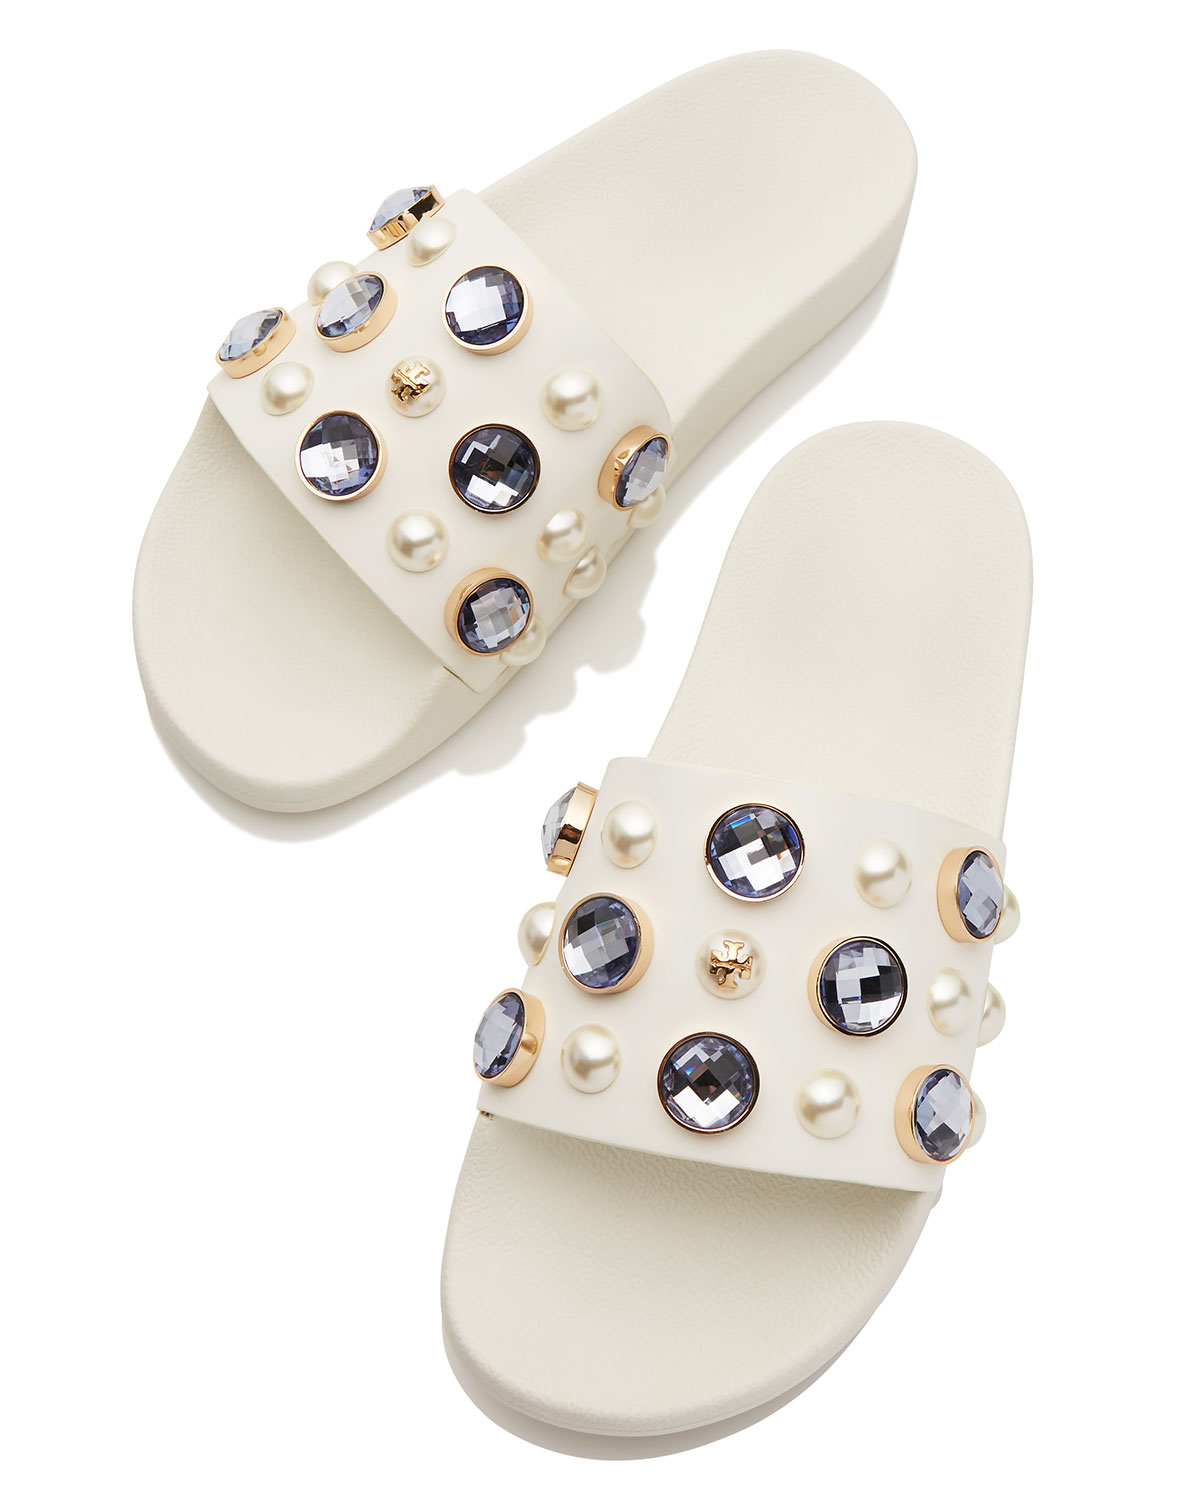 734e46e19c11b Tory Burch Vail Jeweled Flat Slide Sandal